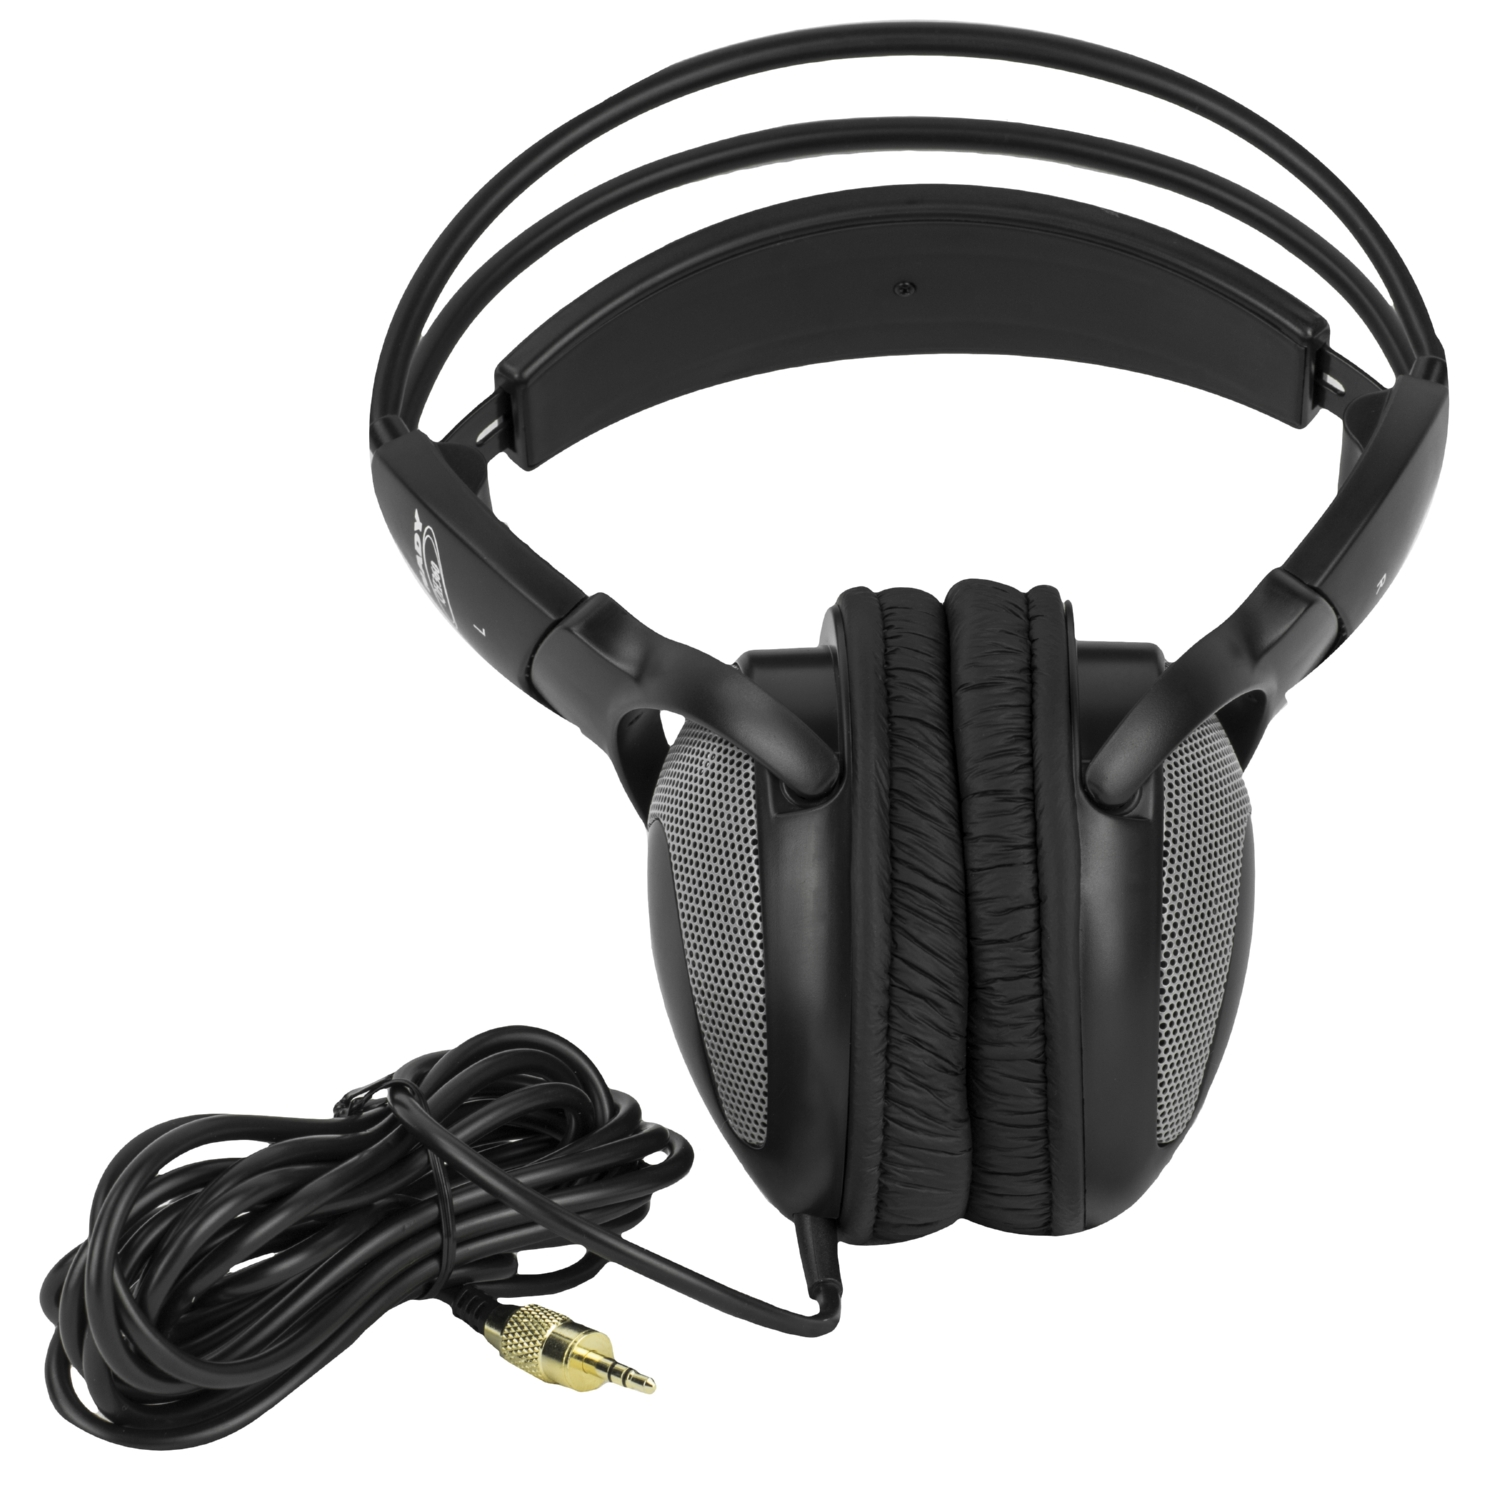 QH-360 Studio Stereo Headphones – Nady Systems, Inc